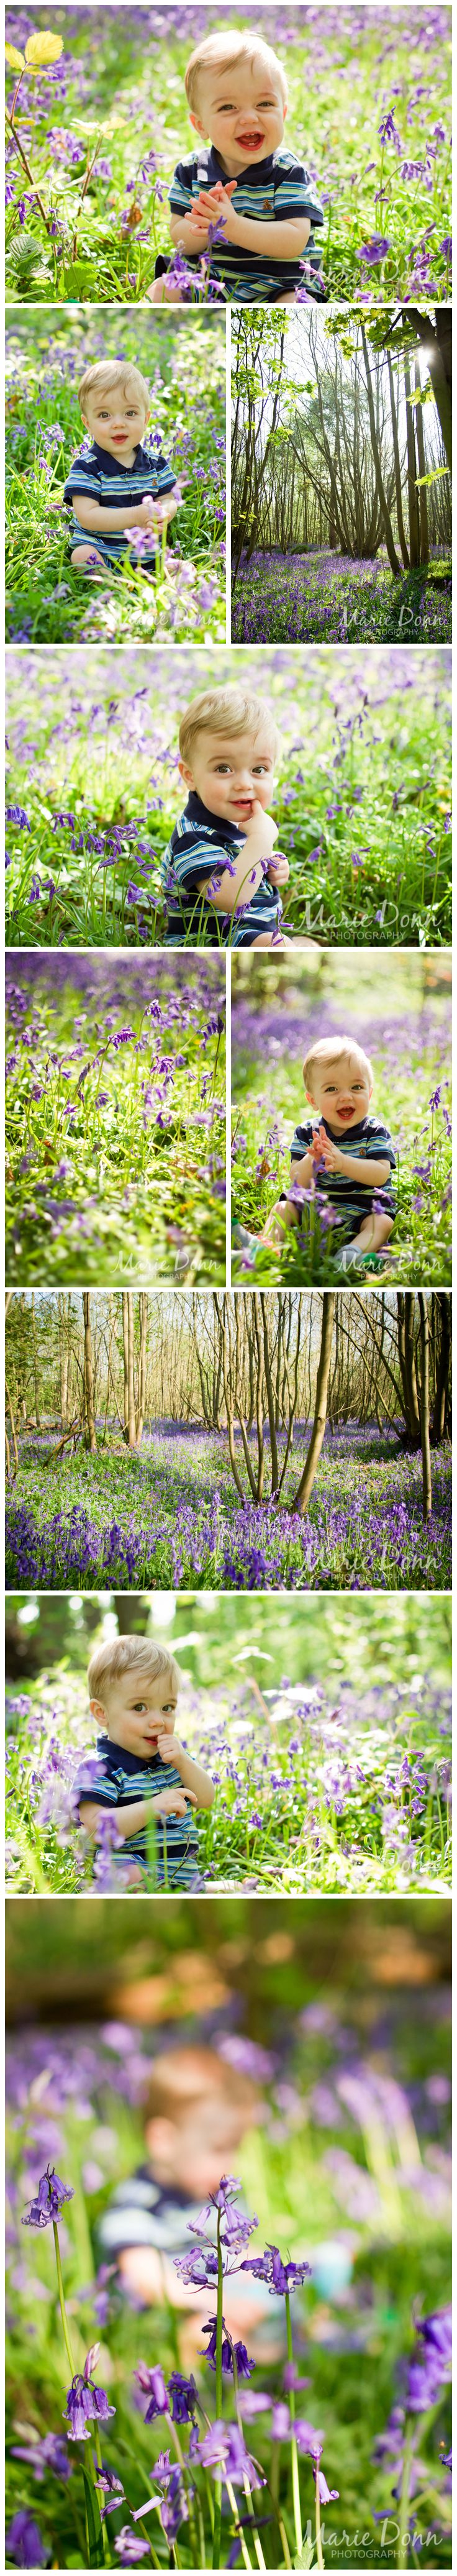 One of mine!  Bluebells, blue, Essex, child photography  (c) Marie Donn Photography